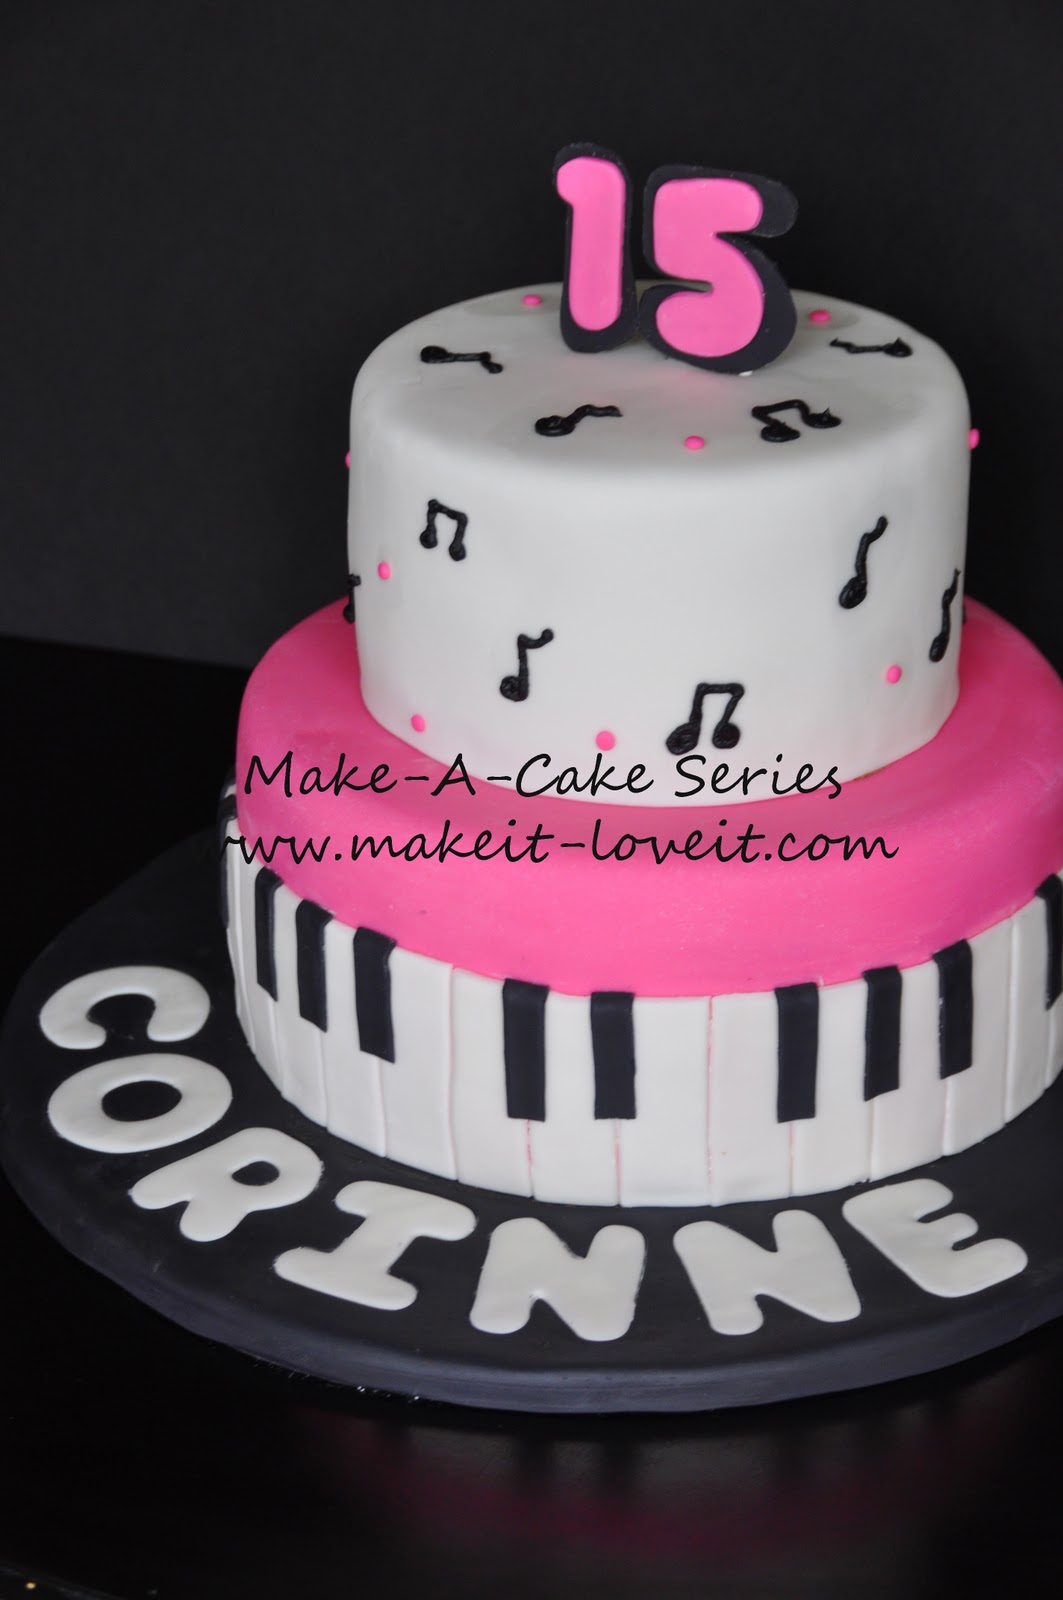 MakeaCake Series Music Cake Make It and Love It